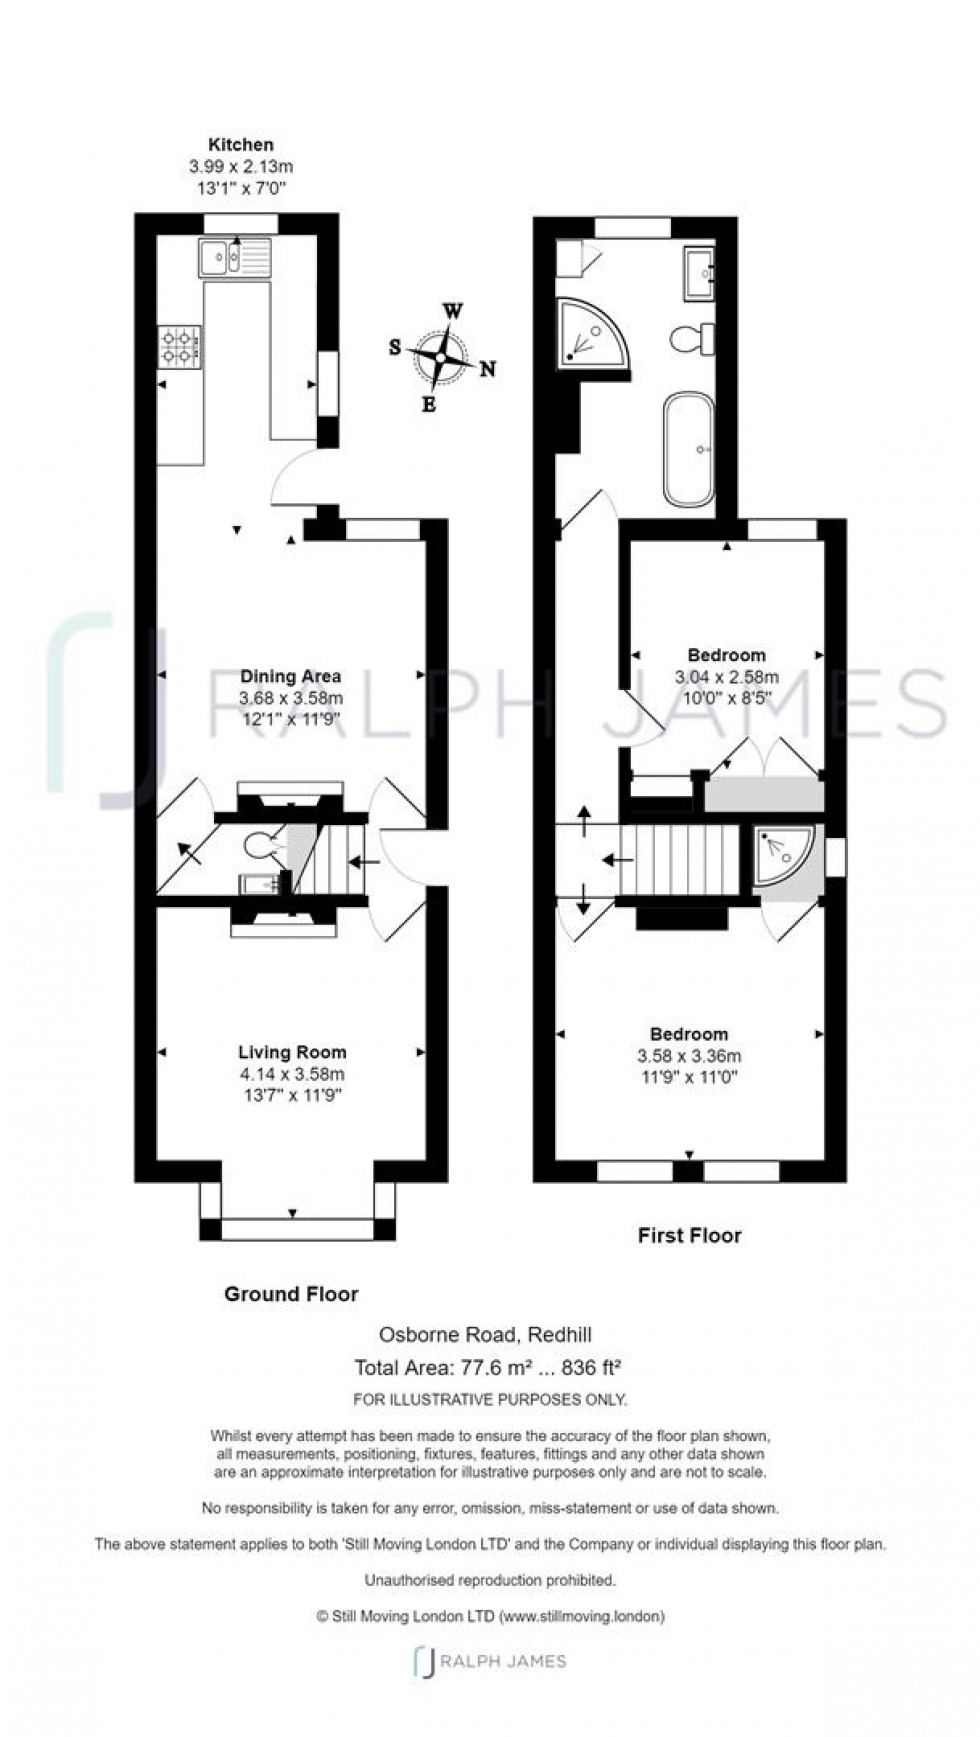 Floorplan for Osborne Road, Redhill